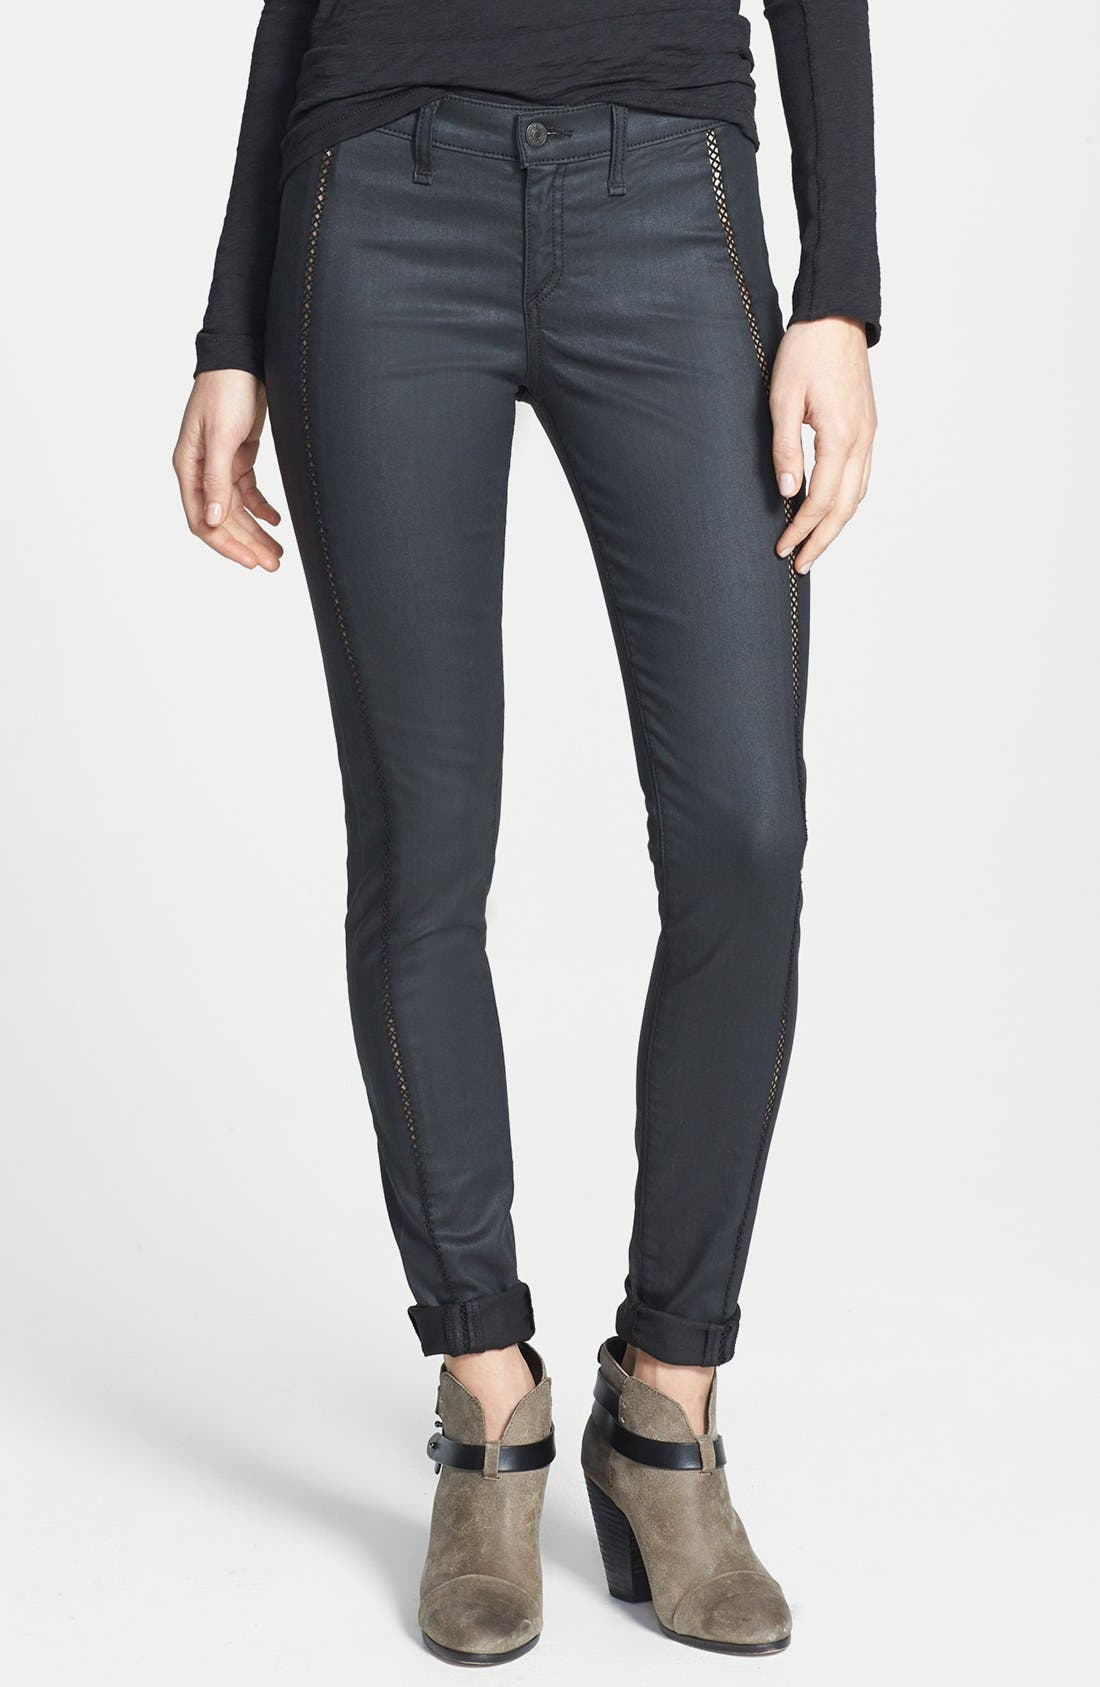 Alternate Image 1 Selected - rag & bone/JEAN 'Separating' Coated Open Detail Skinny Jeans (Shore Ditch)